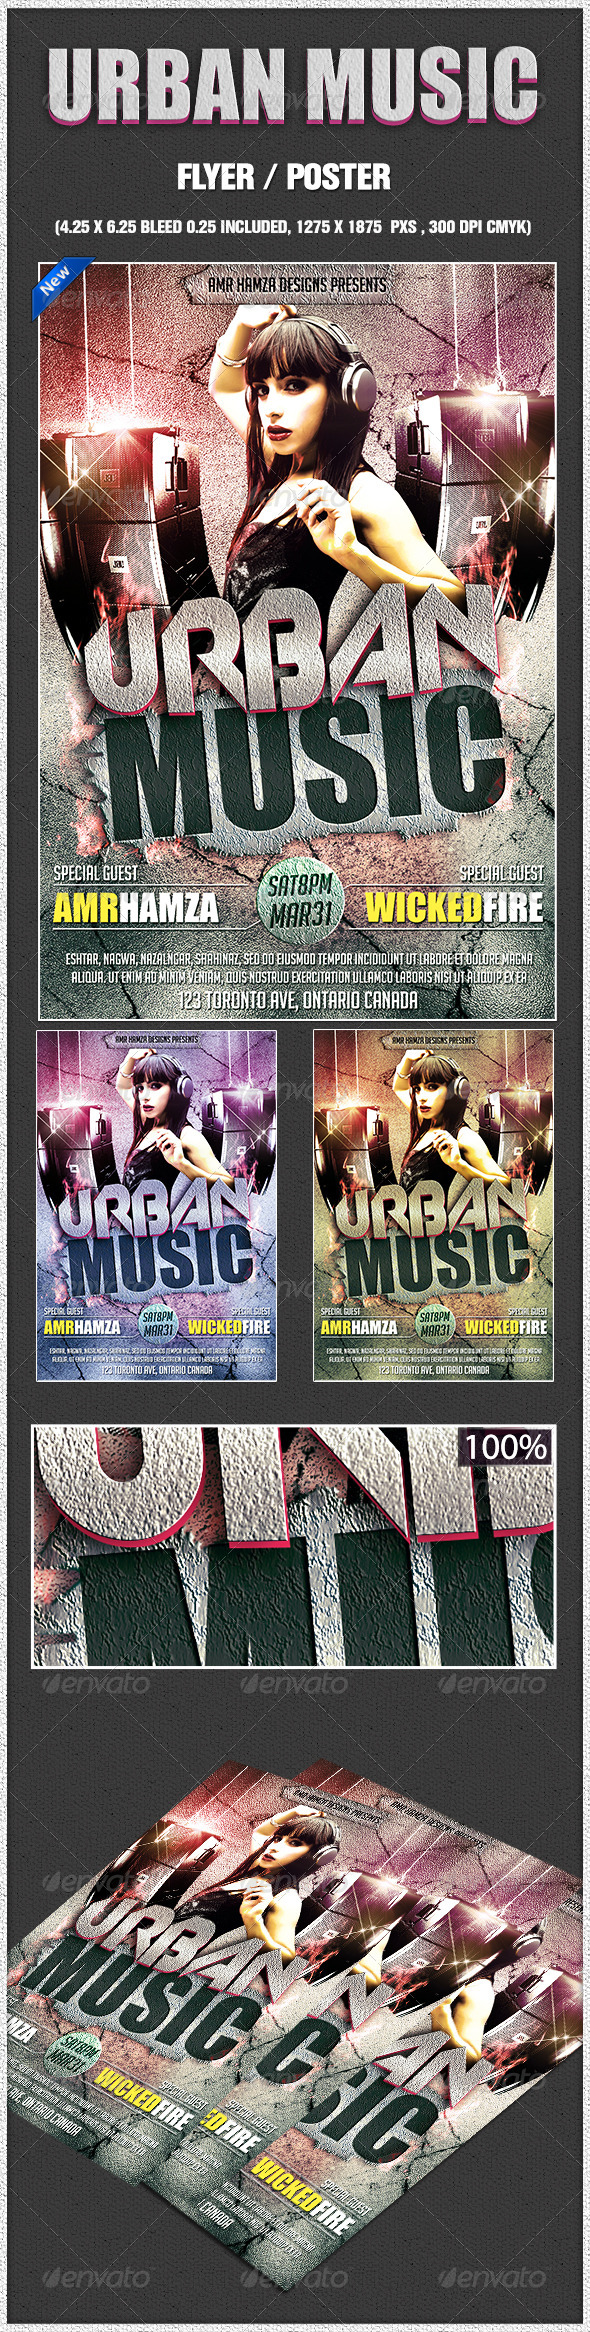 Urban Music Dance Flyer - Clubs & Parties Events